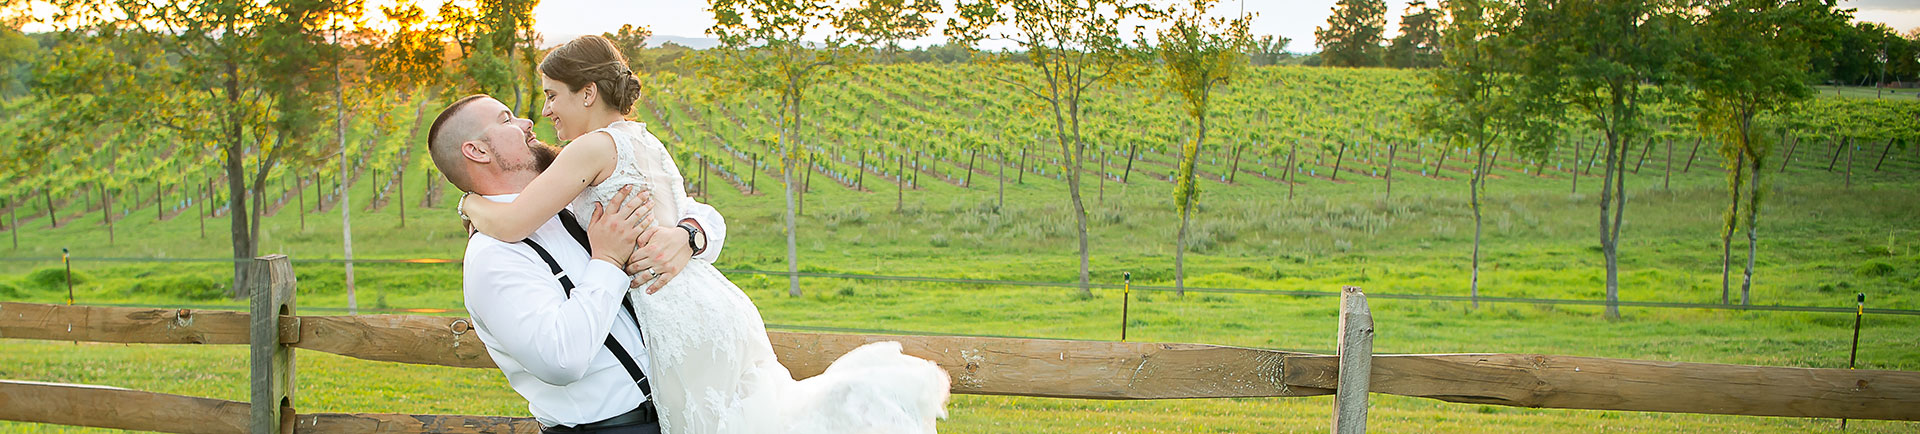 weddings-jessica-mike-gallery-banner